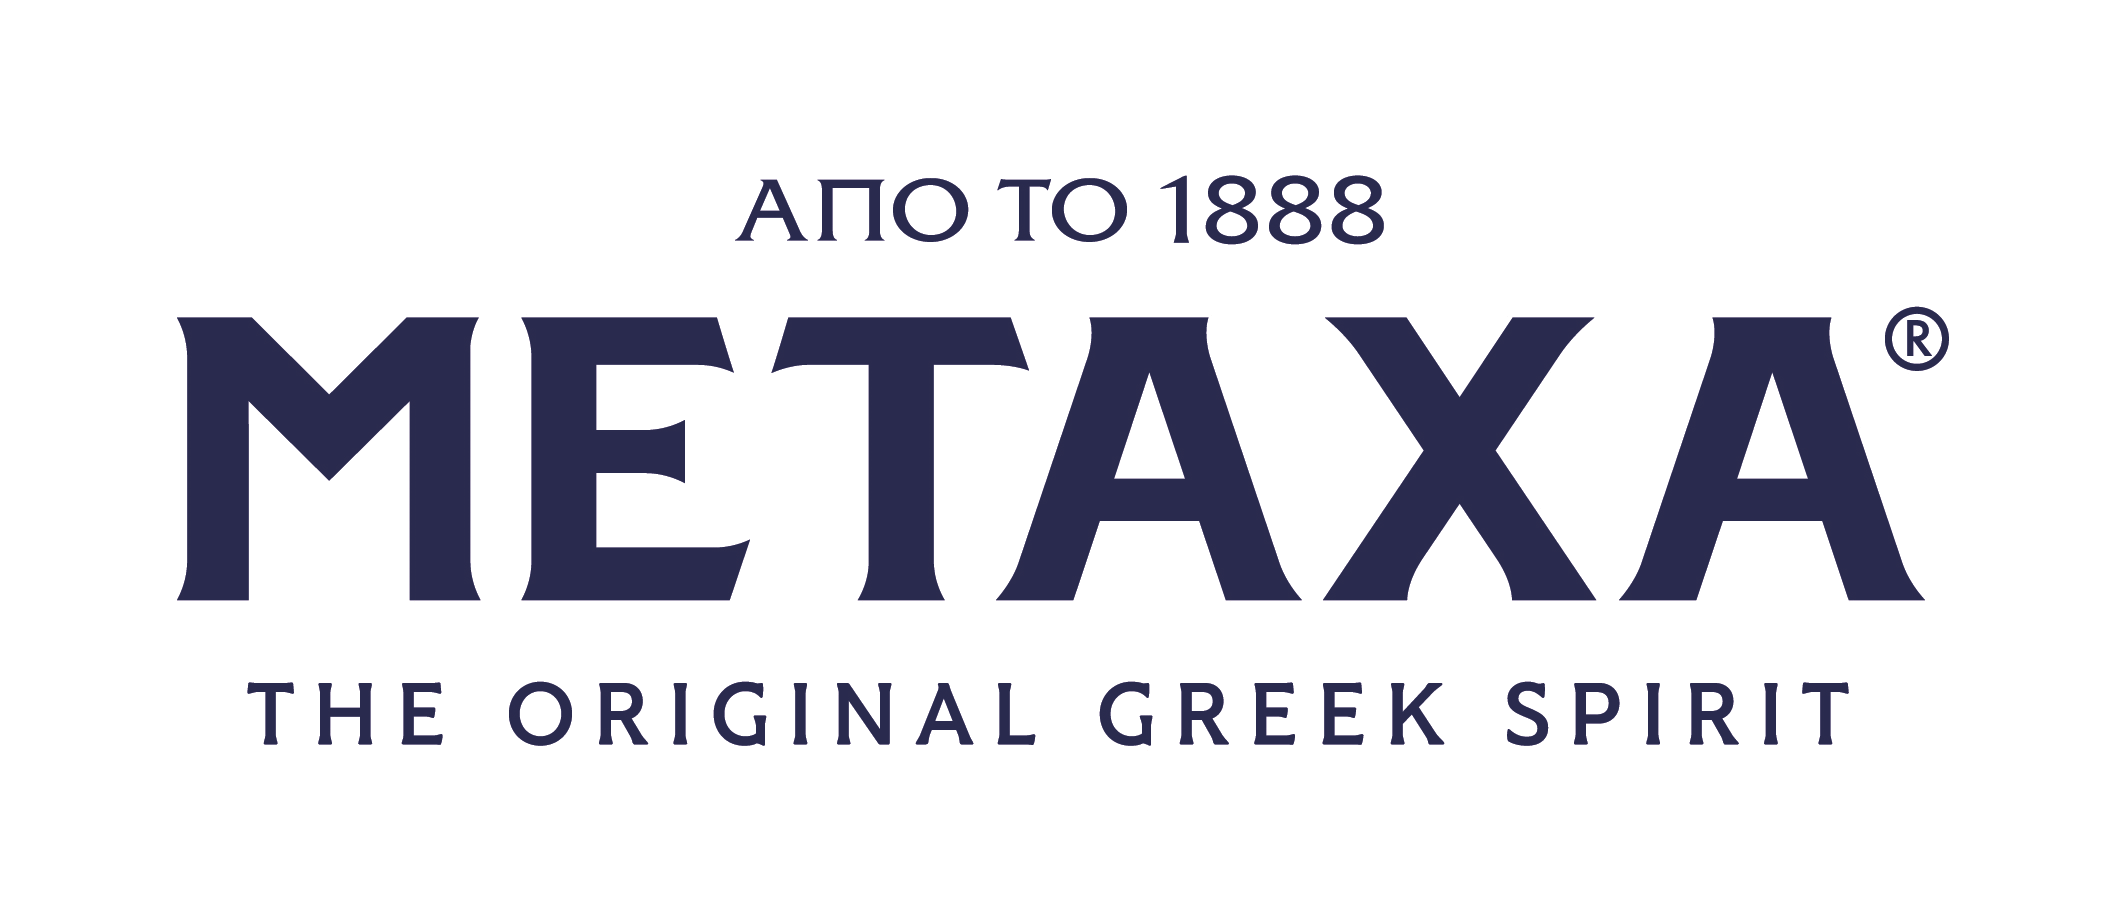 METAXA_BRAND_LOGOTYPE_P.281C copy